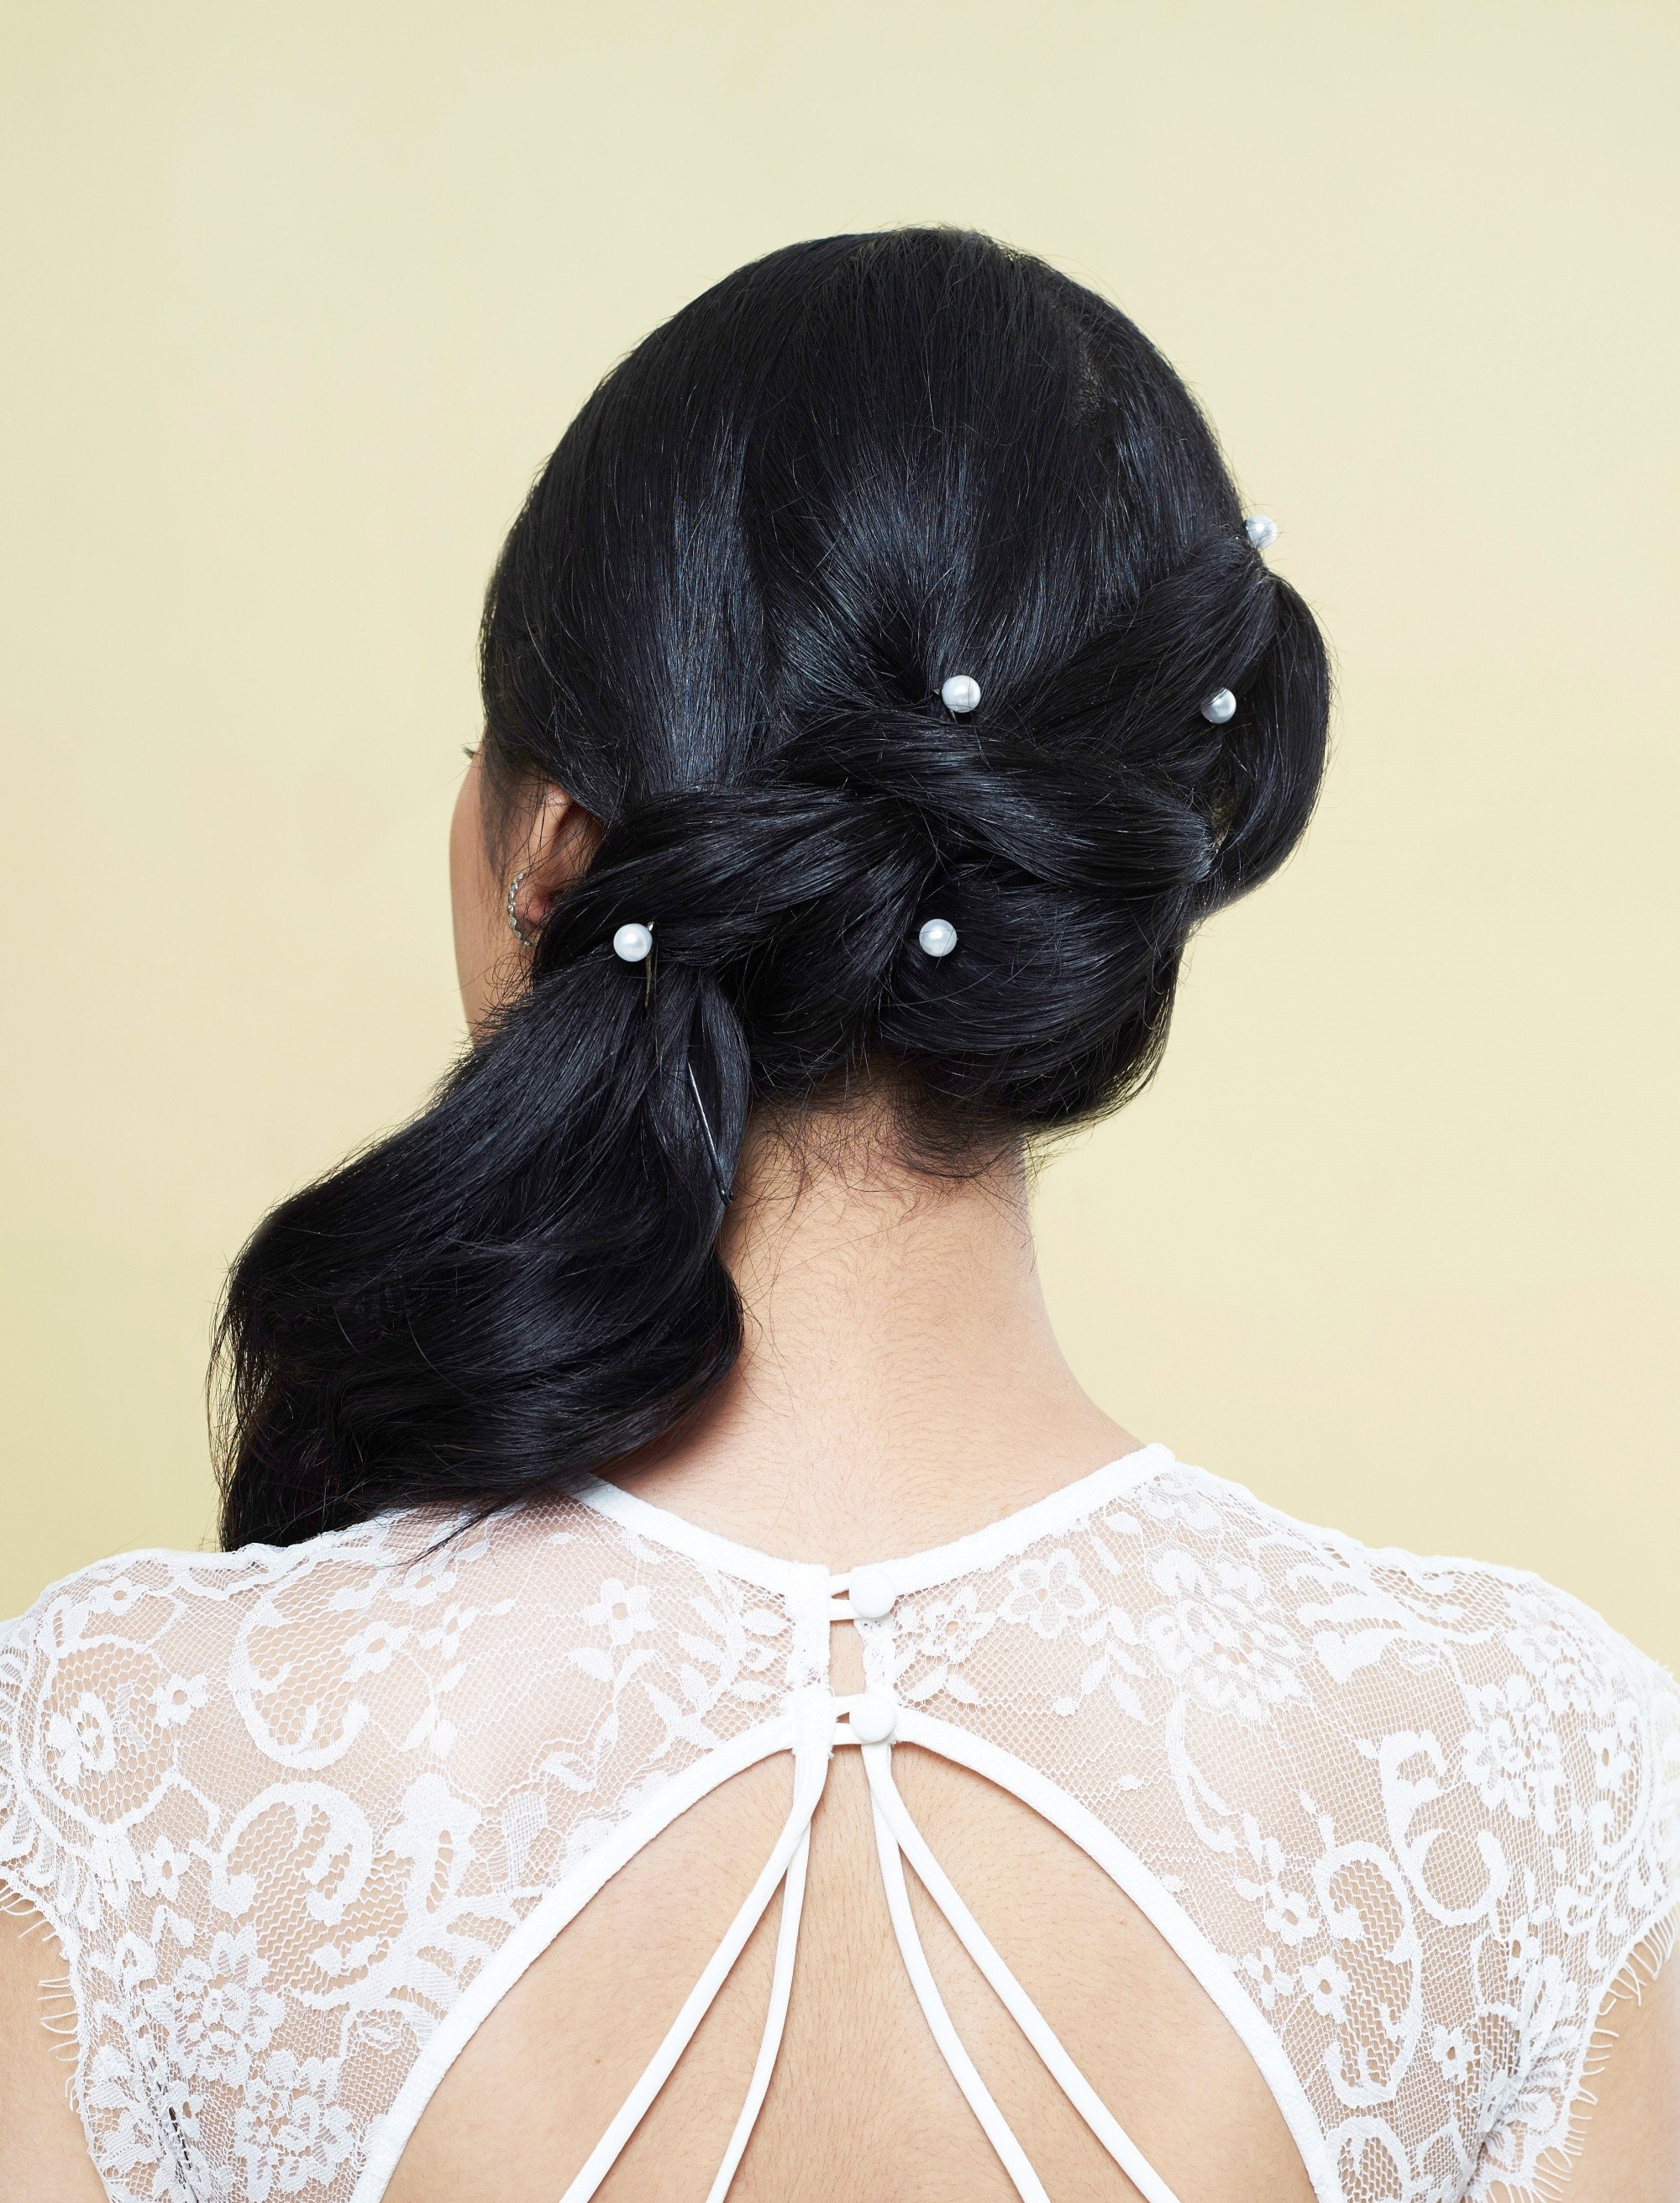 Graduation hairstyles: Back shot of an Asian woman with black hair in pony braid